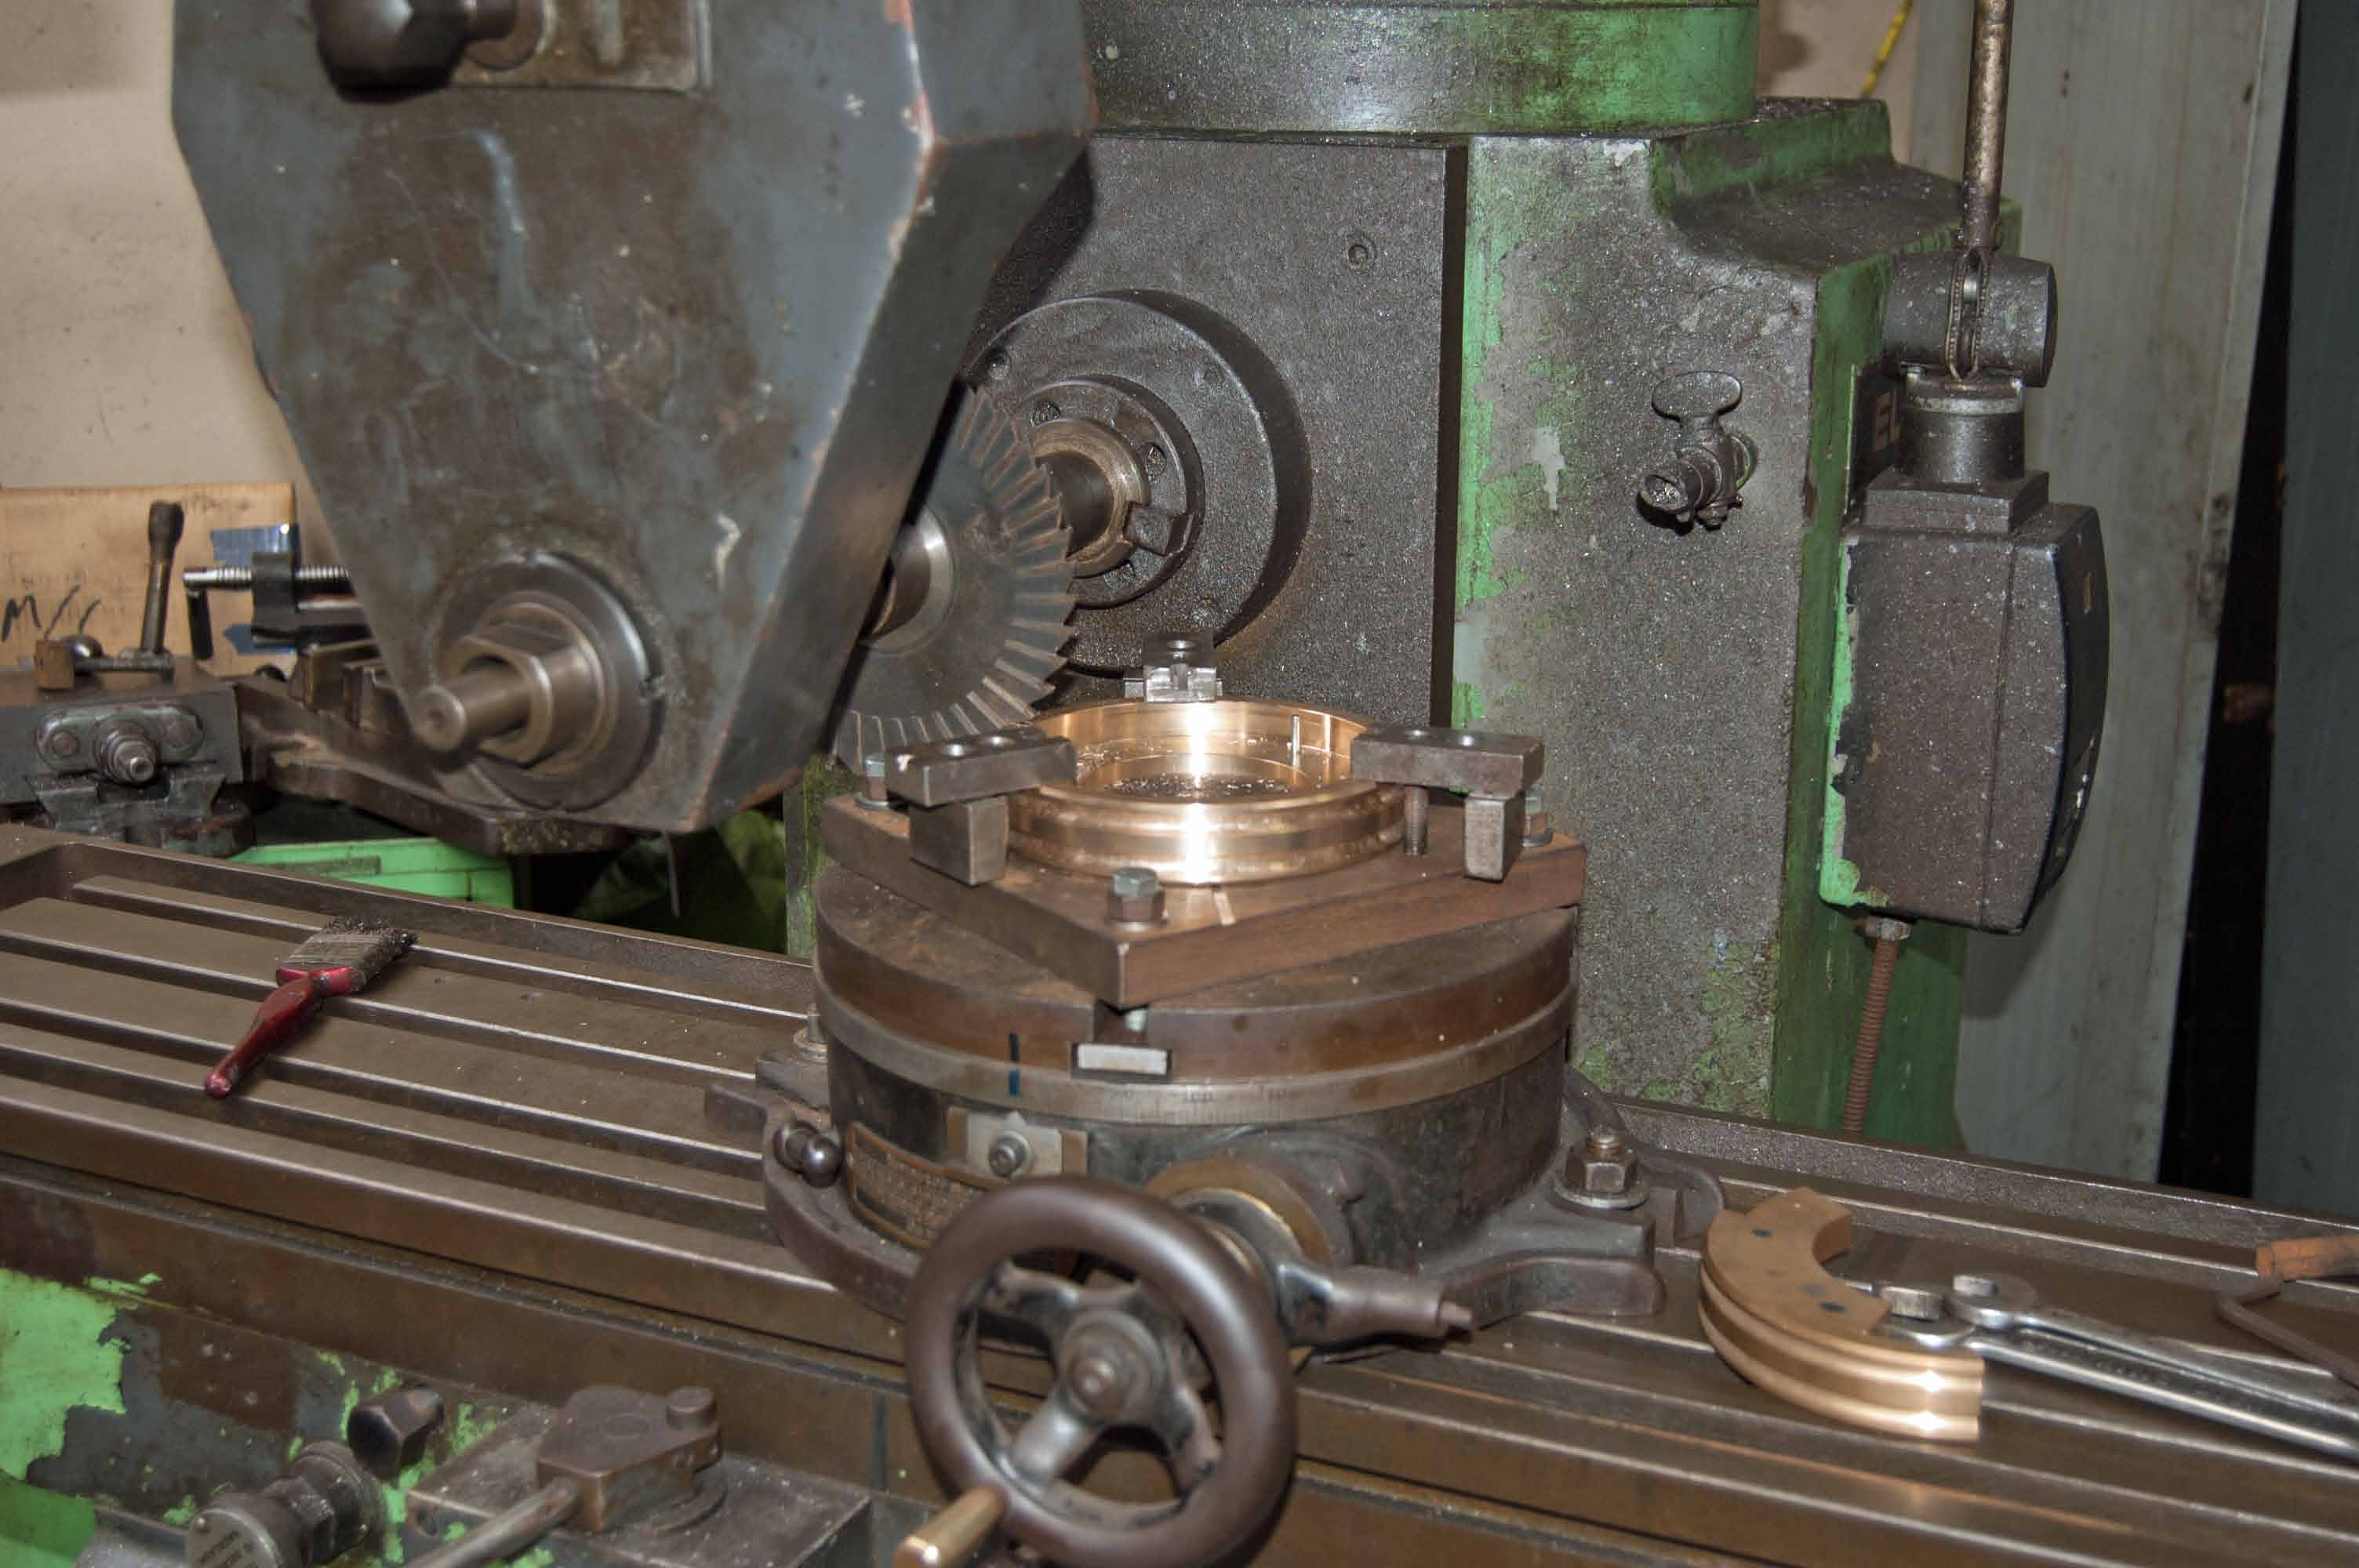 The gland packing ring is cut into three pieces on the milling machine